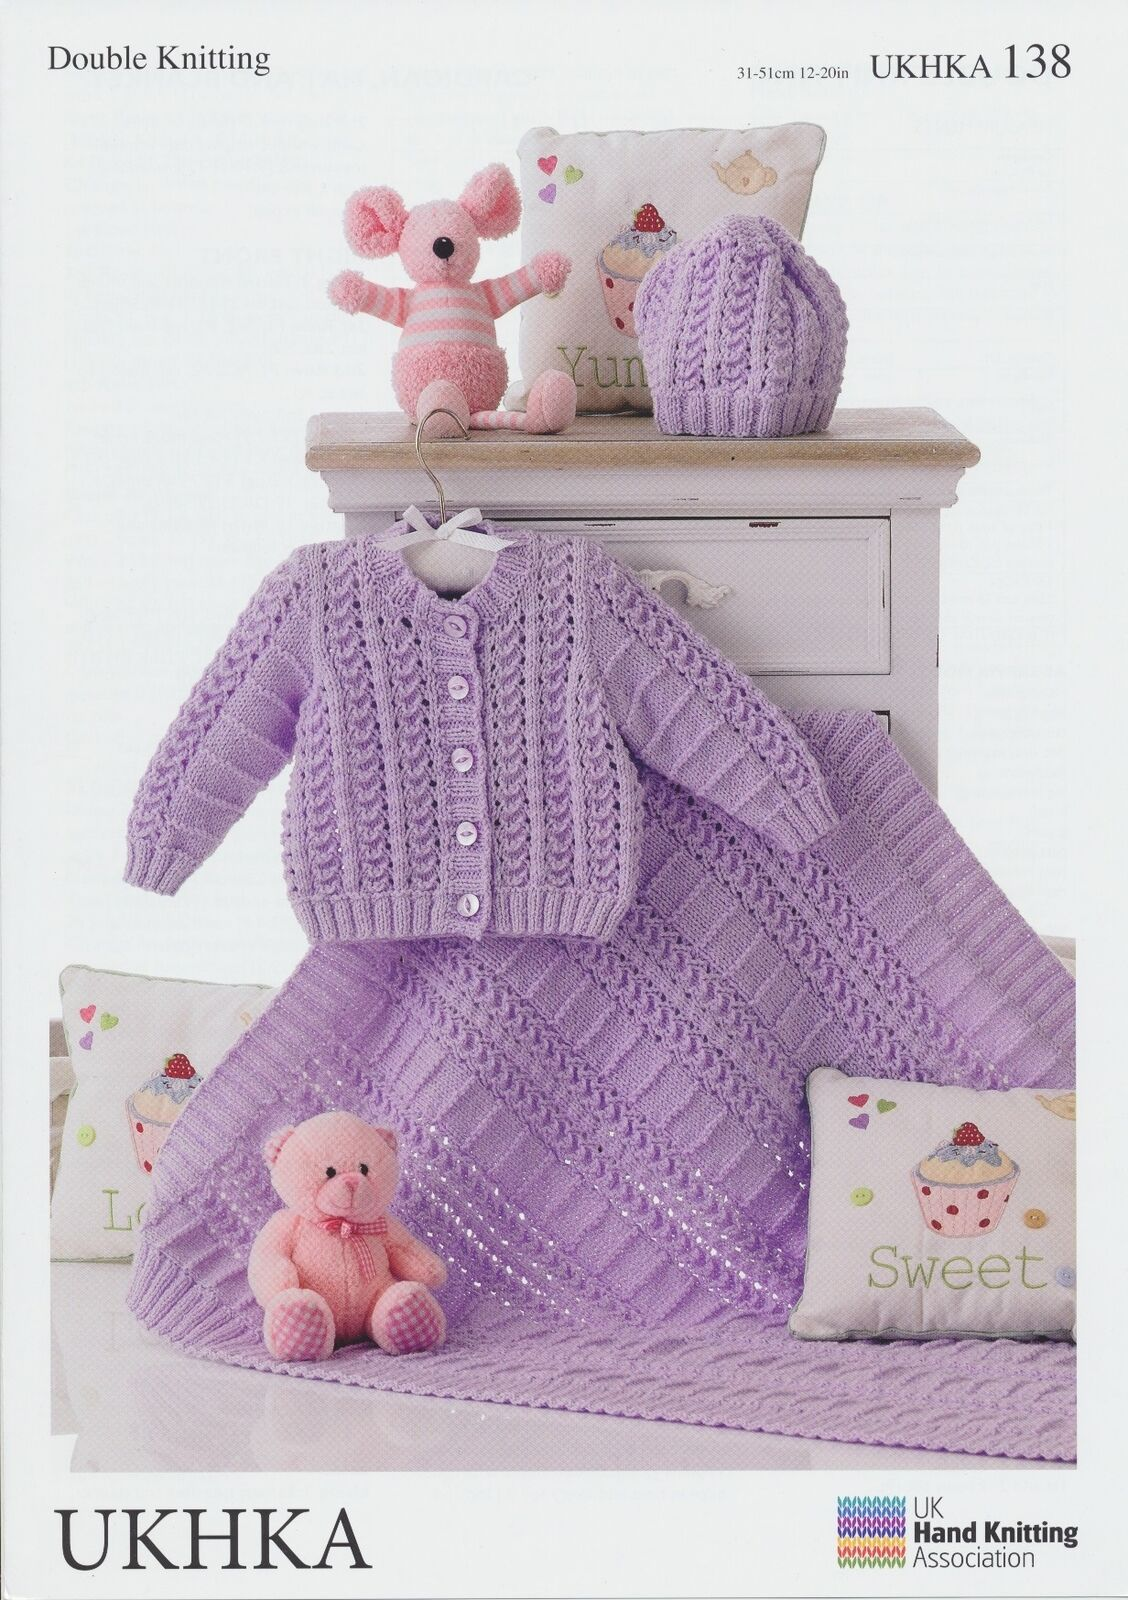 Knitting Patterns For Babies Double Knitting : Double Knitting Pattern Baby Hat, Cardigan & Blanket UKHKA 138   ?2.79 - ...